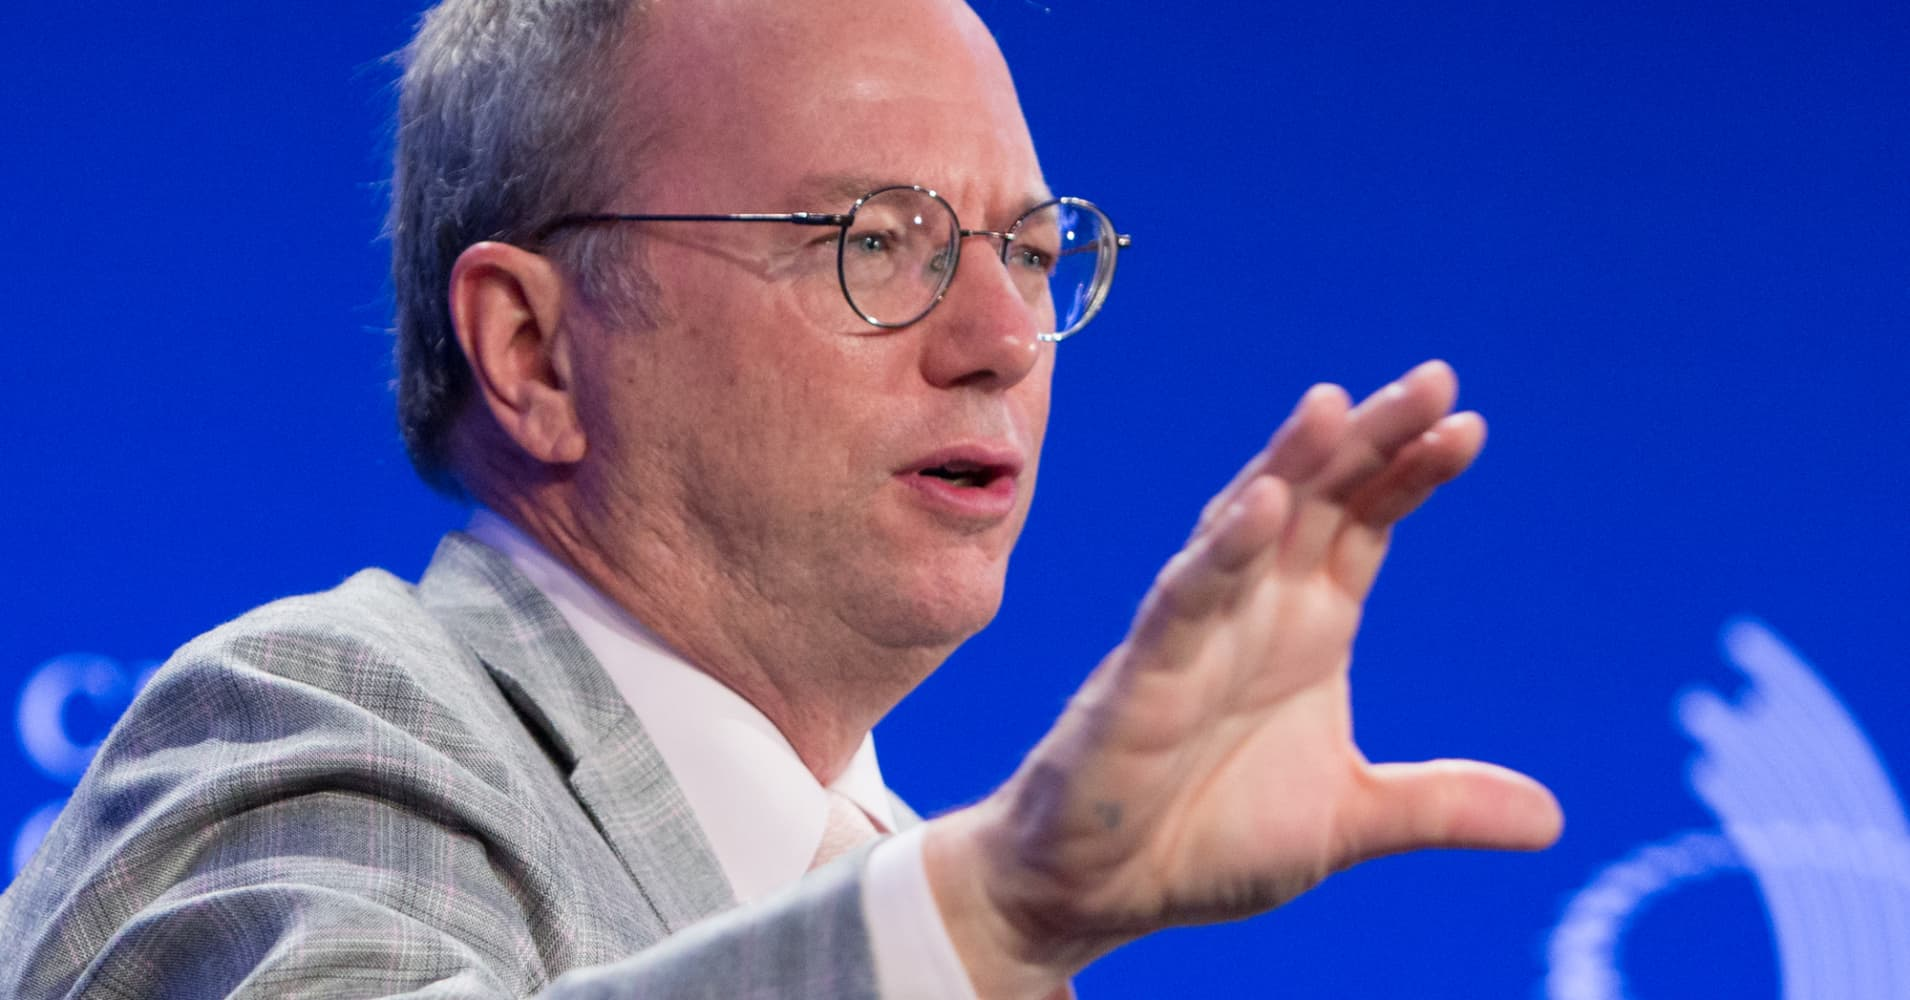 Eric Schmidt, Google's executive chairman